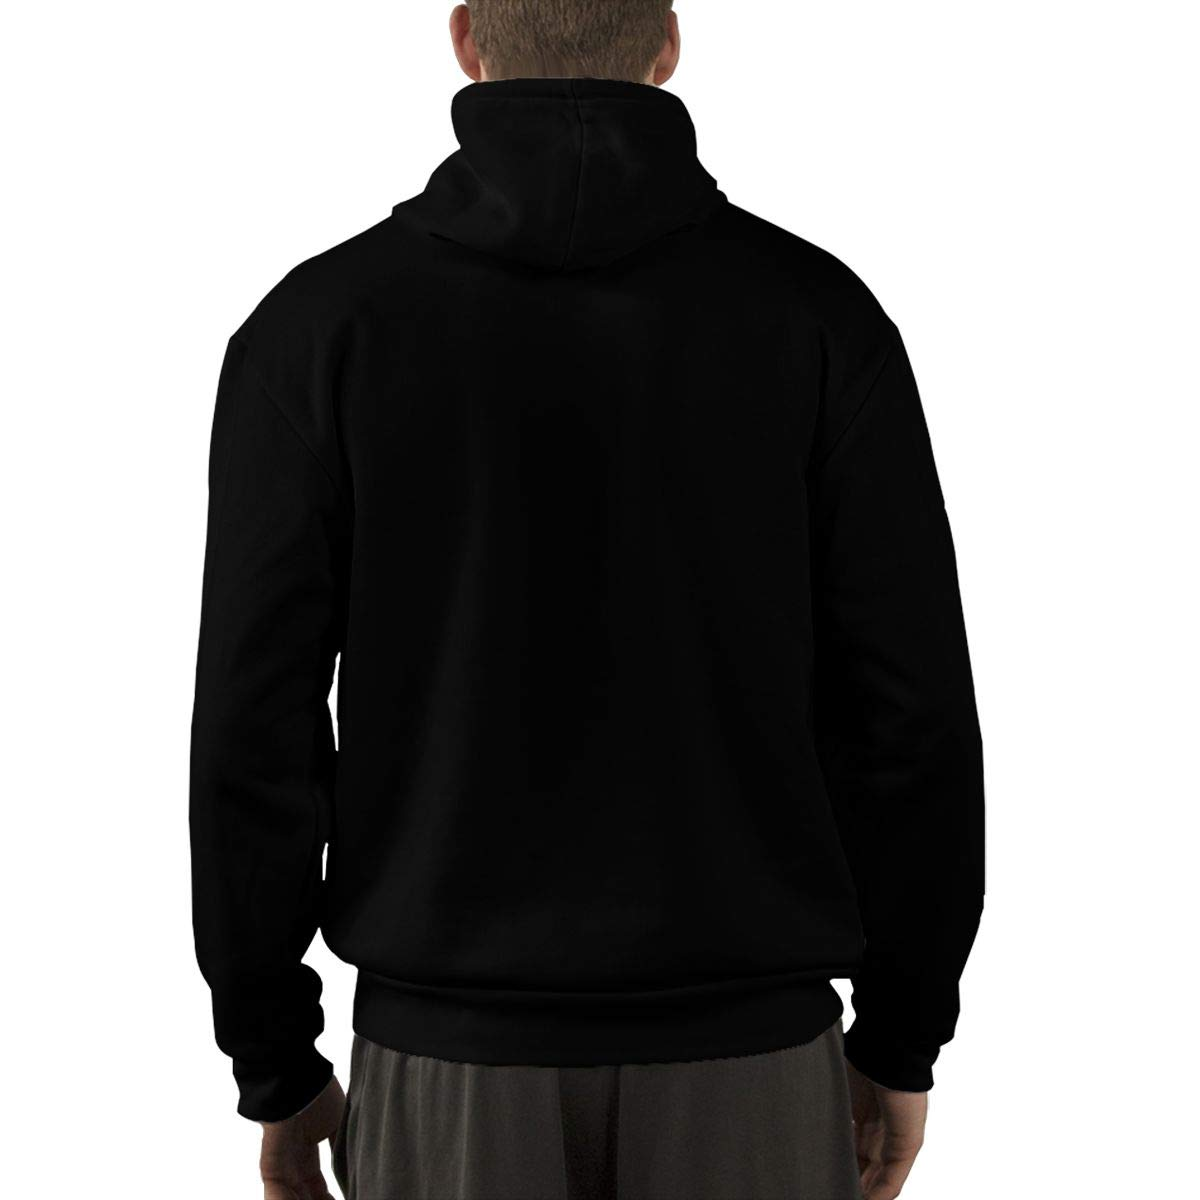 Supernatural Anti Possession Symbol 3 Mens Hooded Sweater NewCoat with Kanga Pocket Black